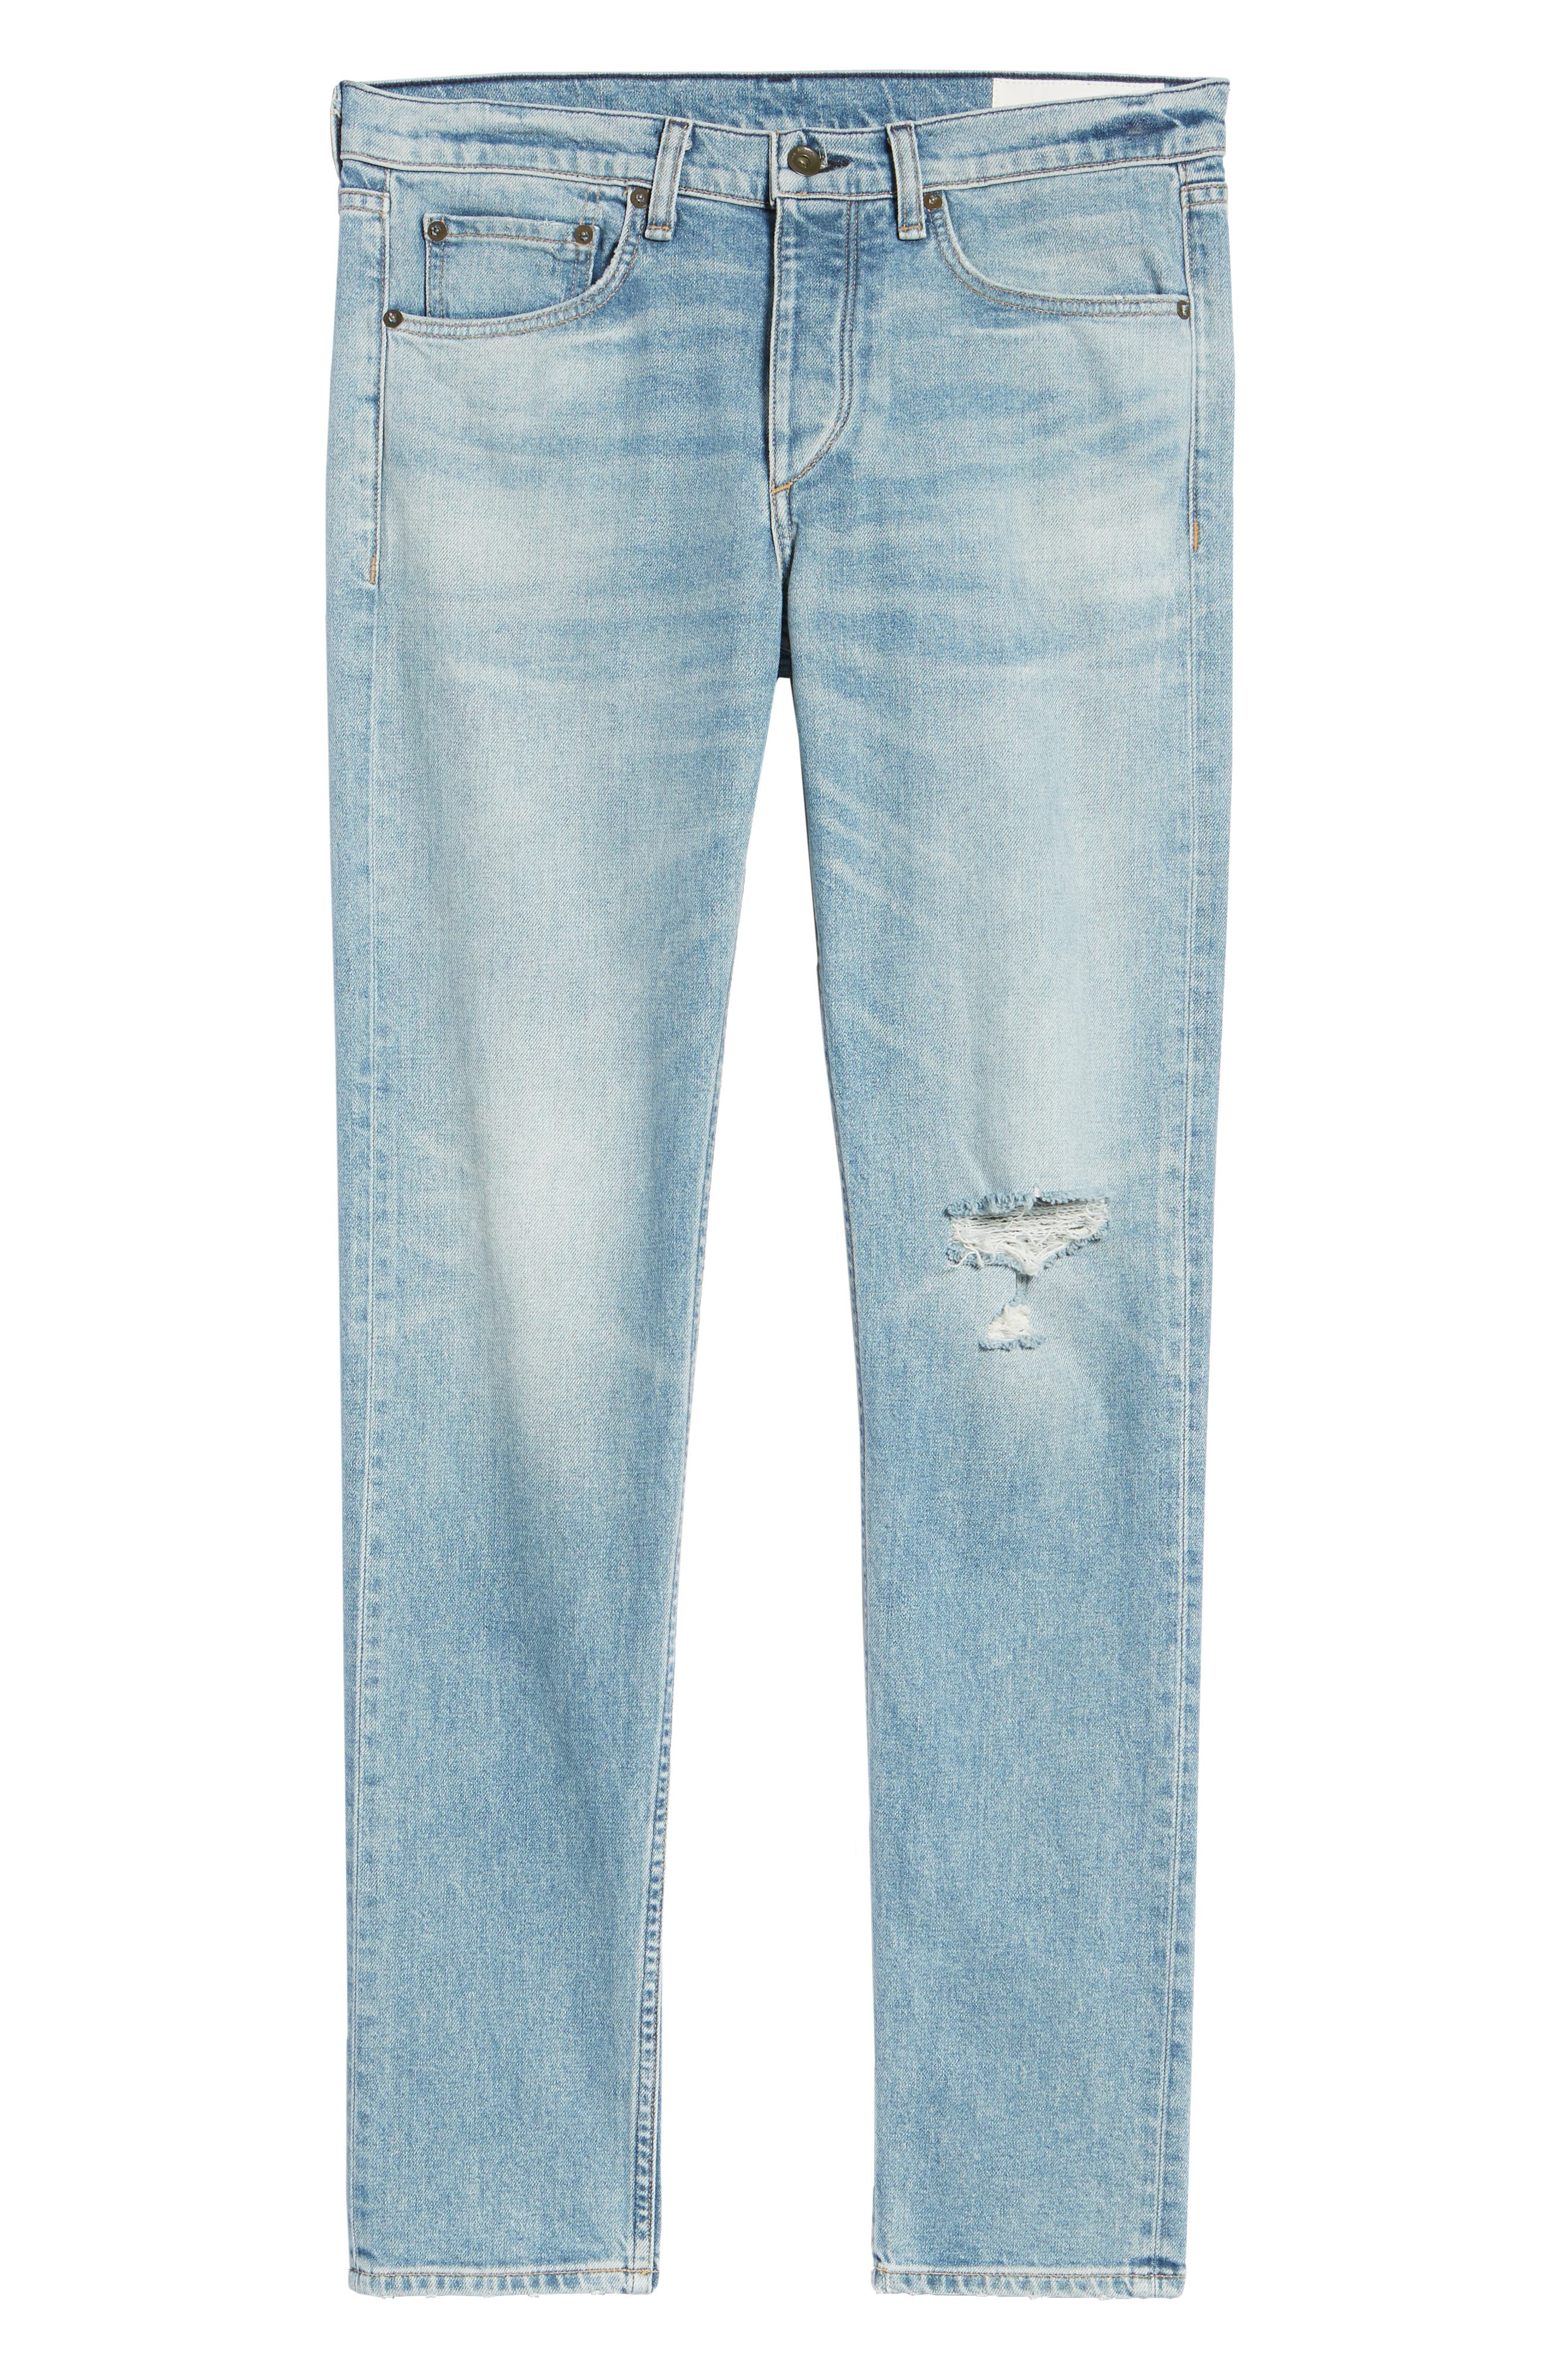 Fit 2 Slim Fit Jeans,                             Alternate thumbnail 6, color,                             JAMIE WITH HOLES